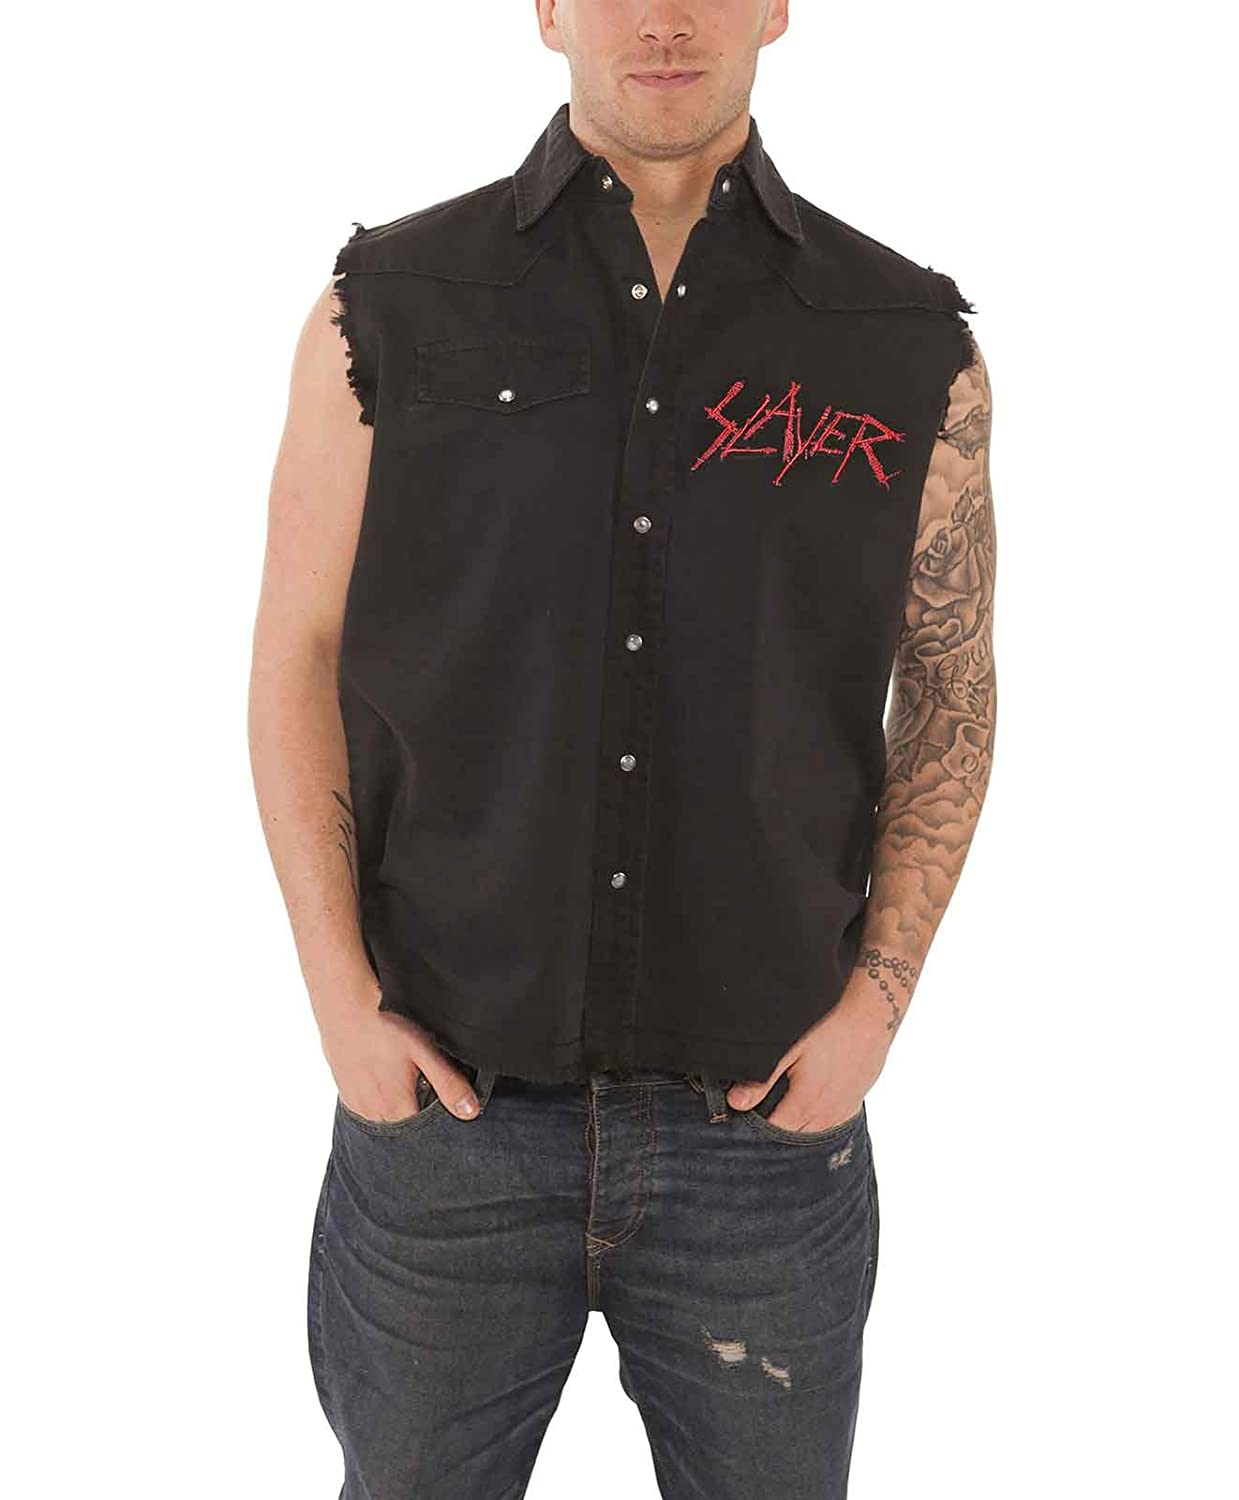 Slayer Black Eagle Official Mens New Black Sleeveless Work Shirt